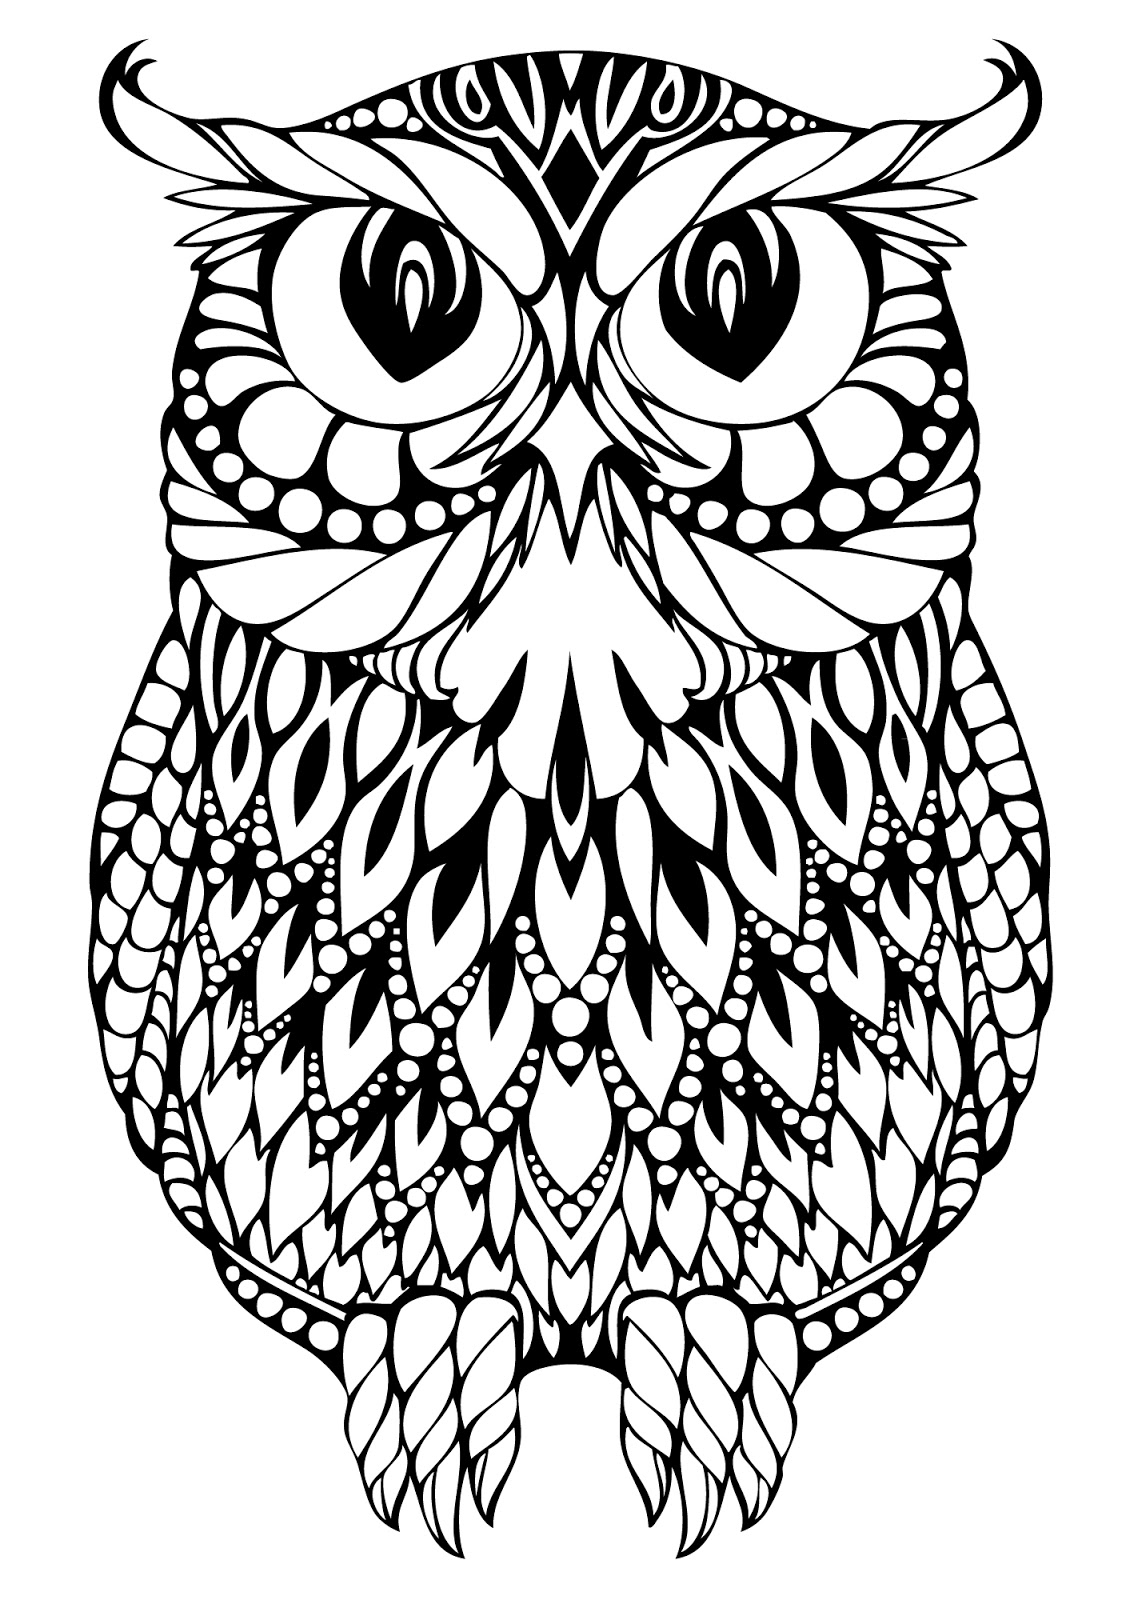 free coloring pages for adults printable free roses printable adult coloring page the graphics fairy adults coloring pages for printable free